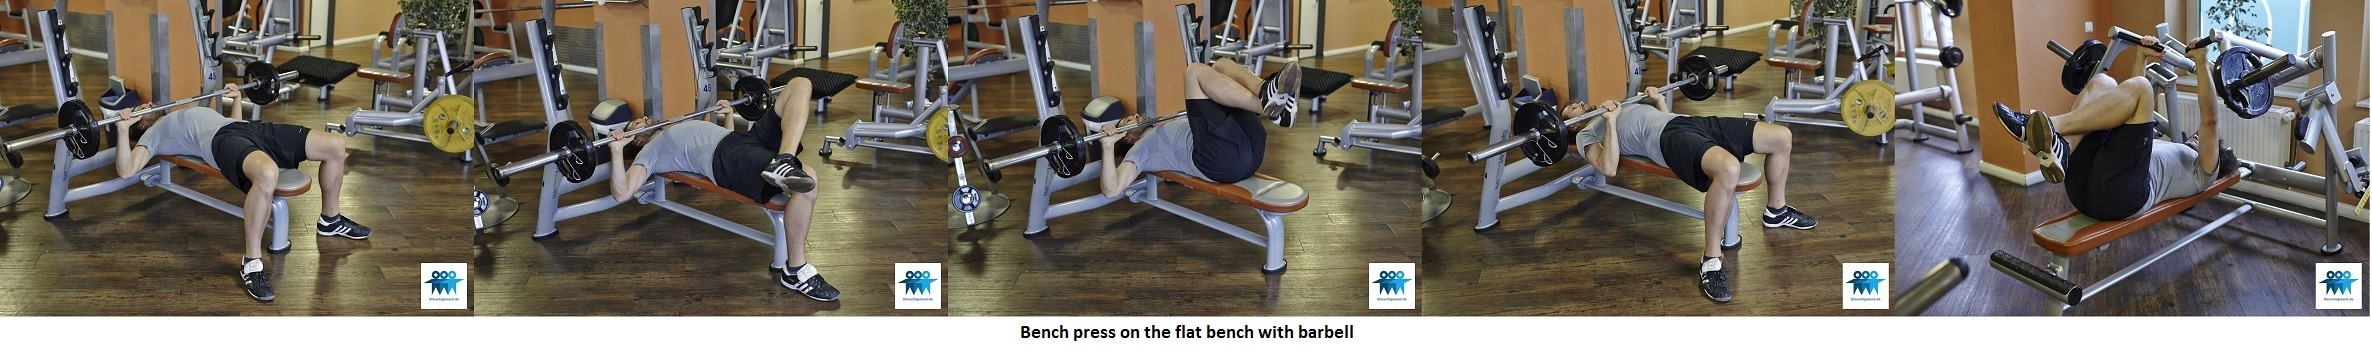 Bench press on the flat bench with barbell